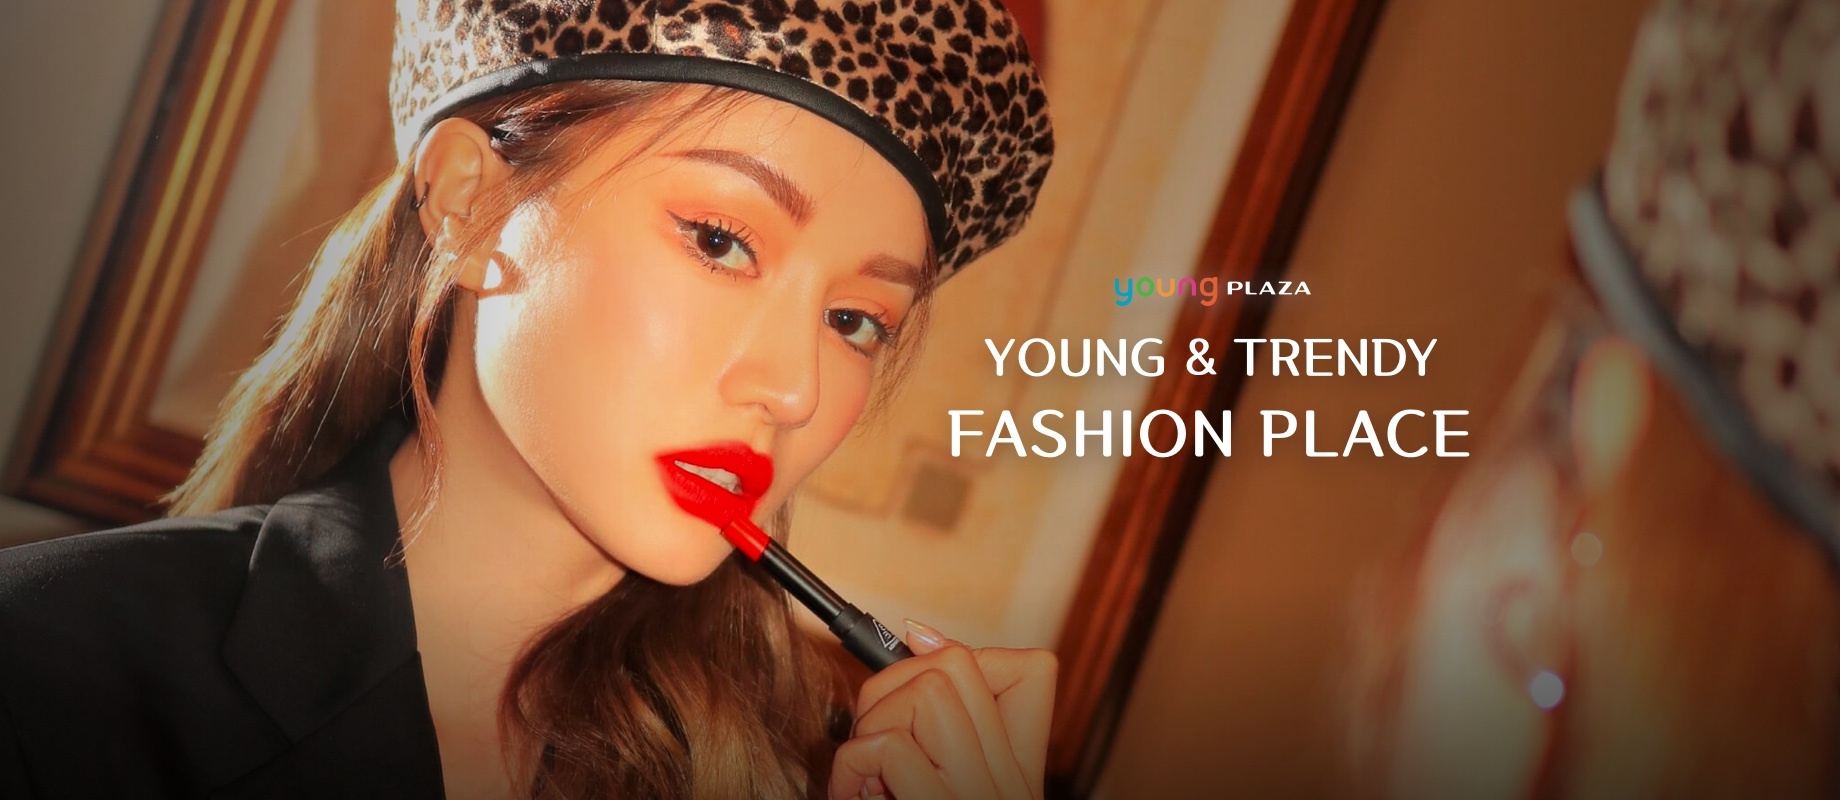 YOUNG PLAZA YOUNG & TRENDY FASHION PLACE